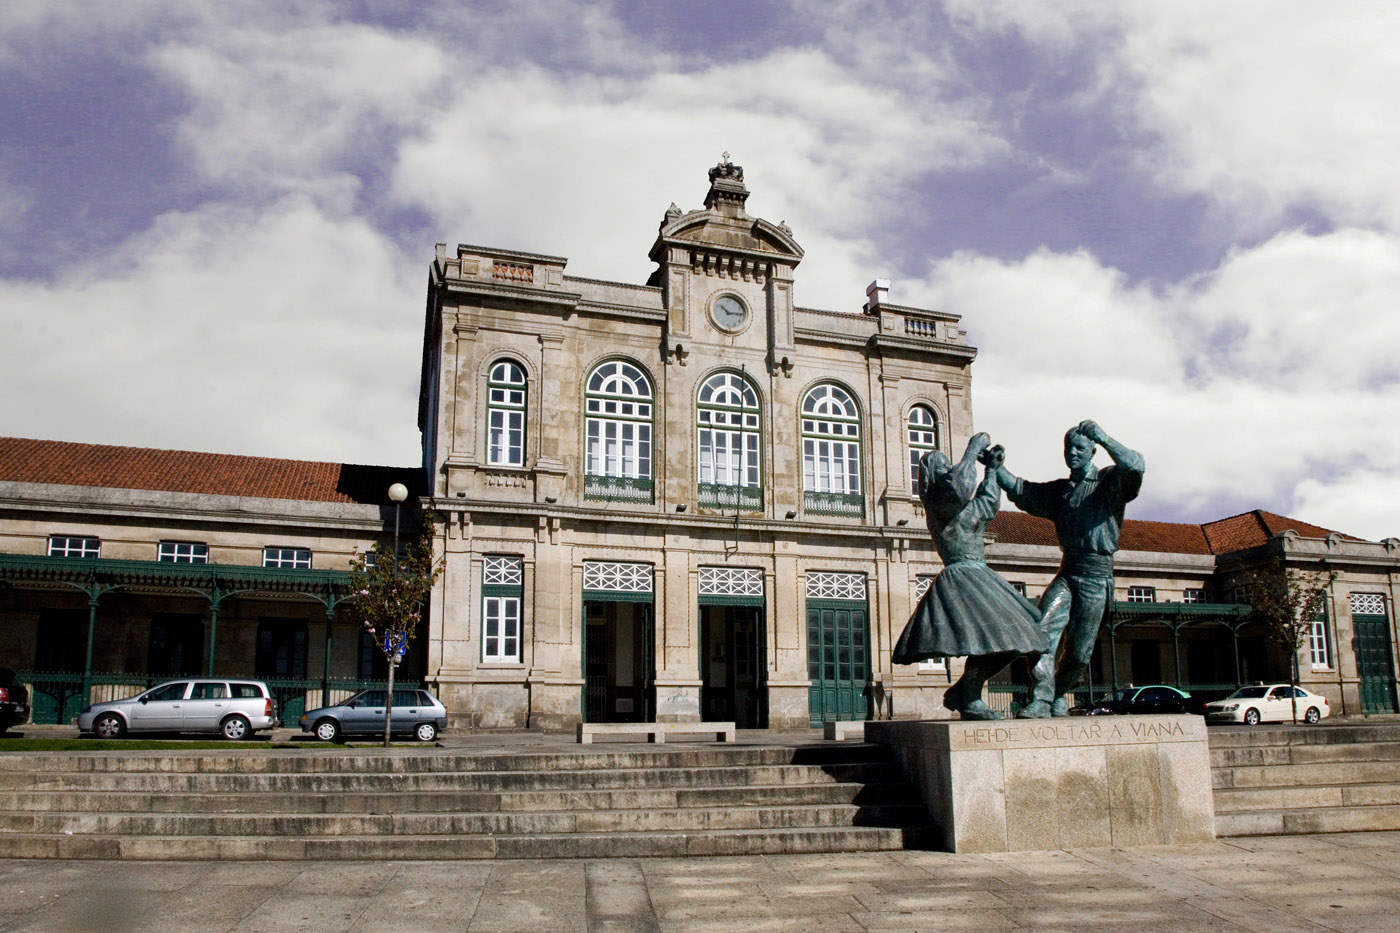 Viana do castelo portugal for travellers and tourists - Viana do castelo portugal ...